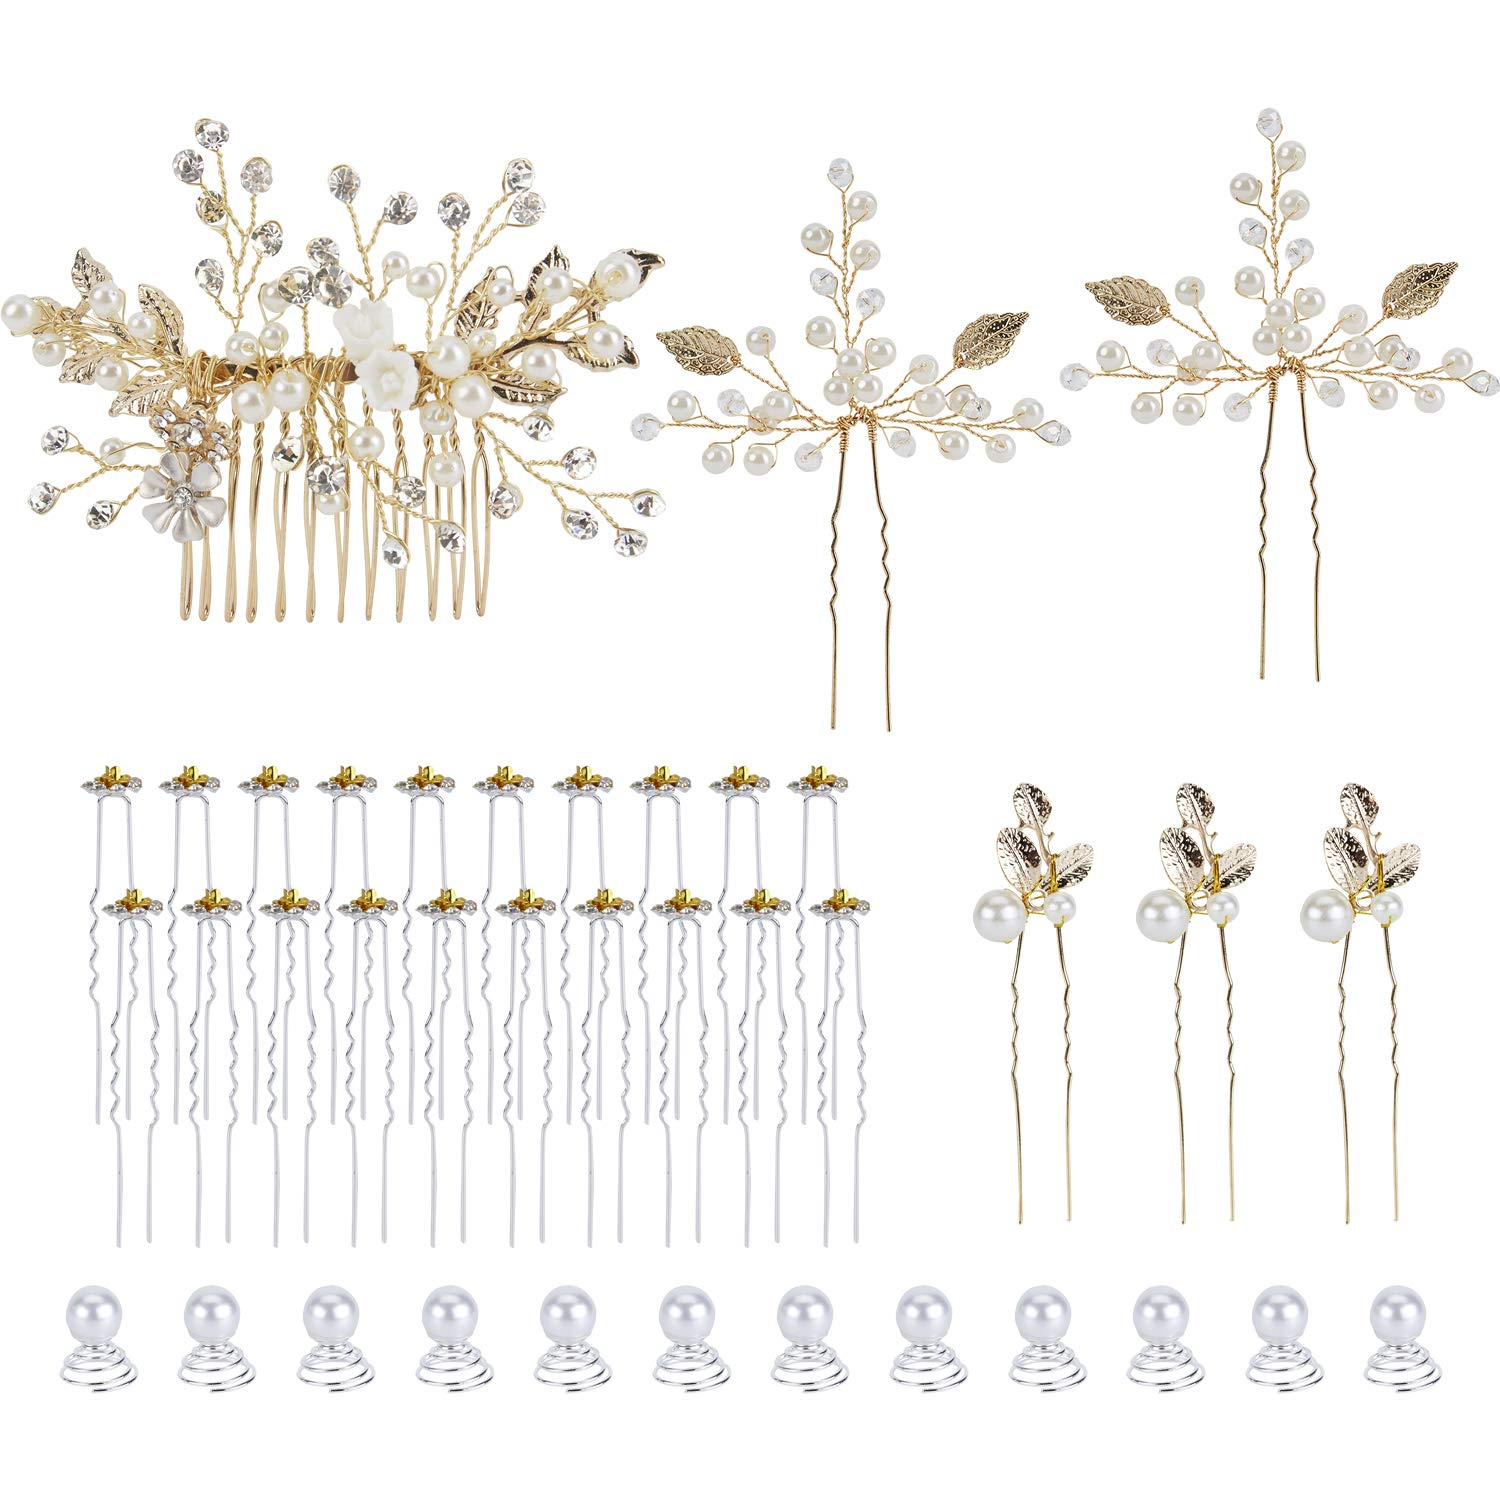 38 Pack Gold Metal Hair Pieces Clips Side Combs Decorative Bobby Pins  Barrettes Party Prom Vines Headpiece Pearl Beads Crystal Rhinestone Flower  Leaf ...